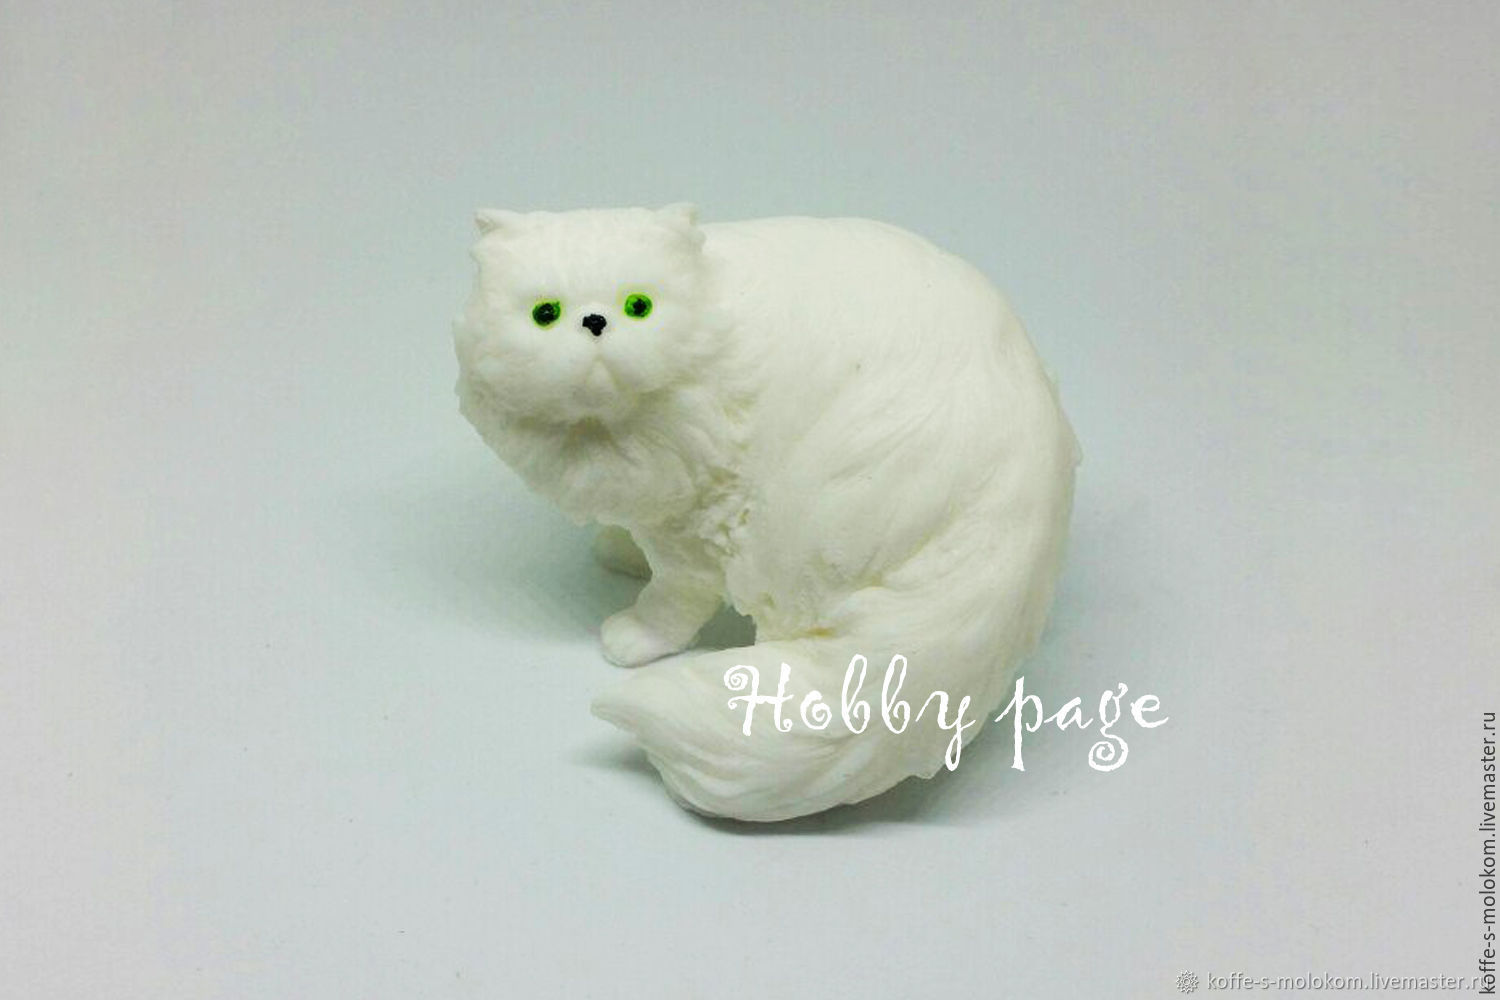 8e55f5a62de8 Cosmetic Materials handmade. Silicone molds for soap cat Persian.  Hobbypage. Online shopping on